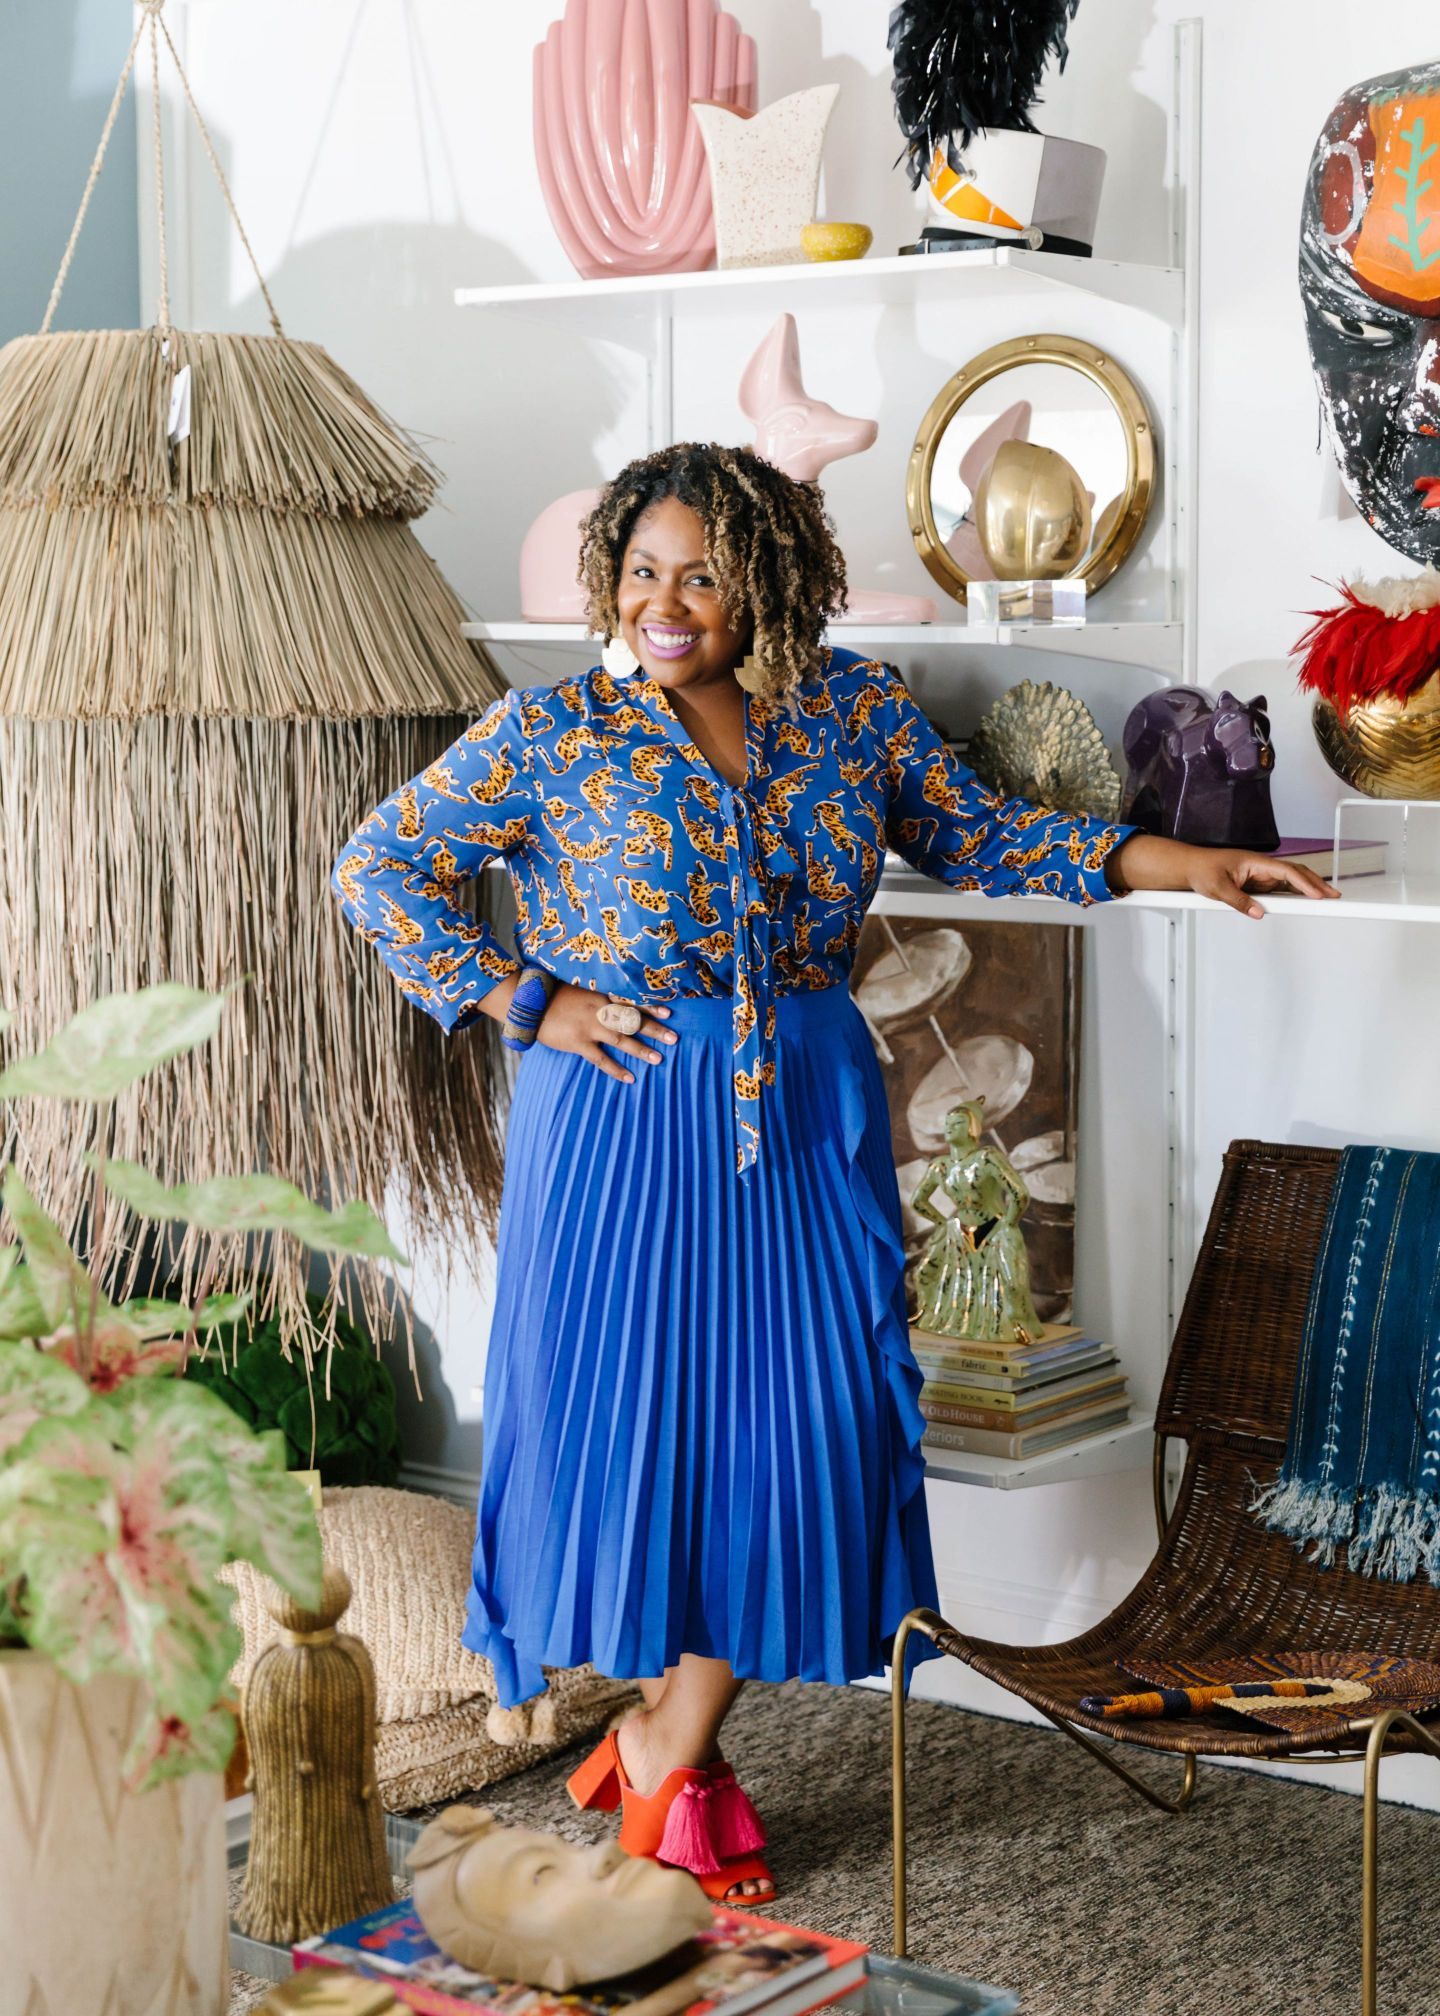 415a2103-1440x2016 Black- Owned Vintage Home Decor Boutique Opens in Charlotte, NC